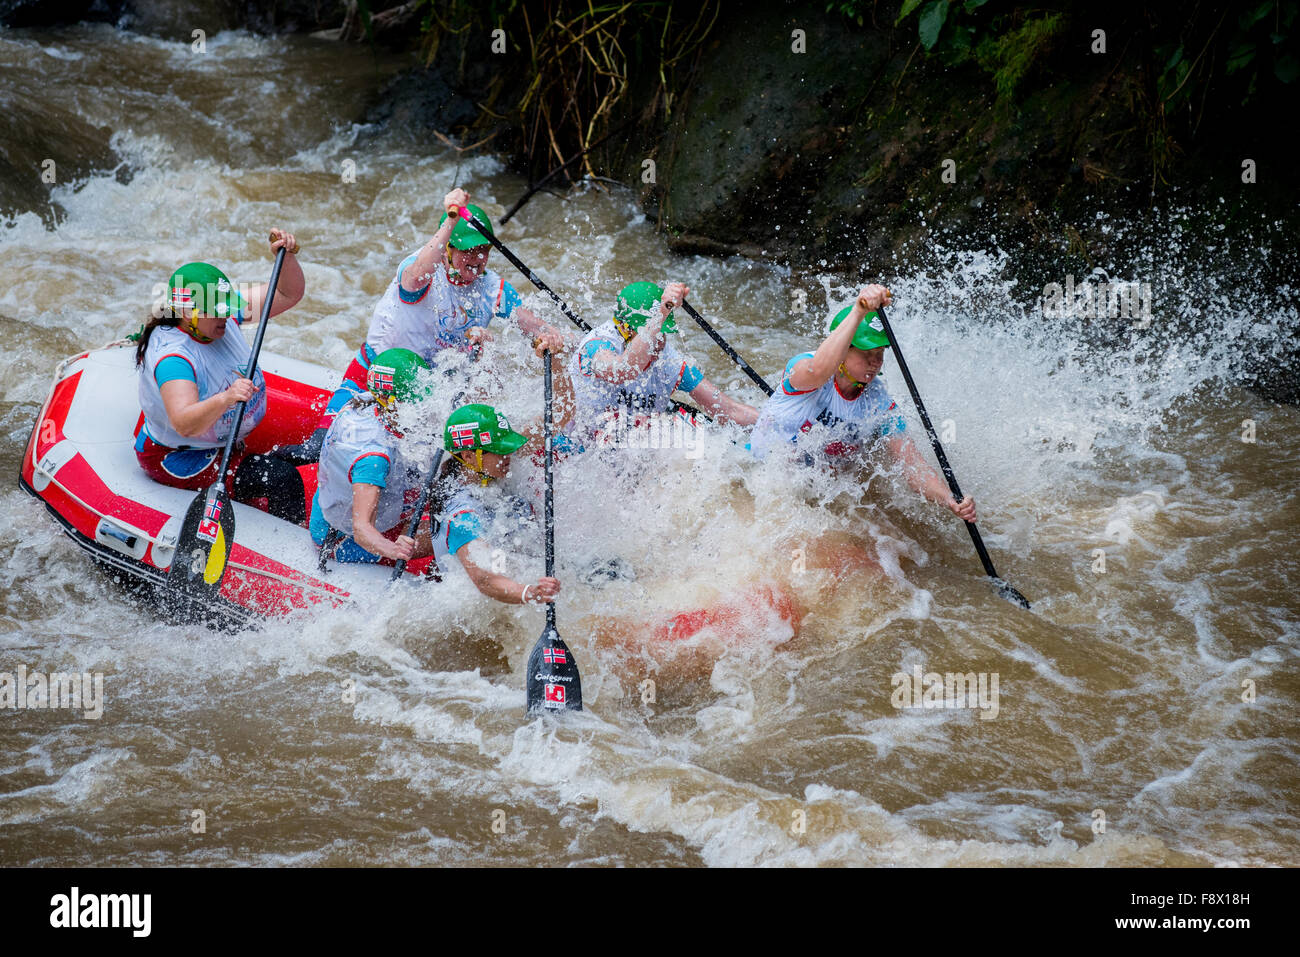 Norwegian master women team during head to head sprint category on World Rafting Championship. - Stock Image